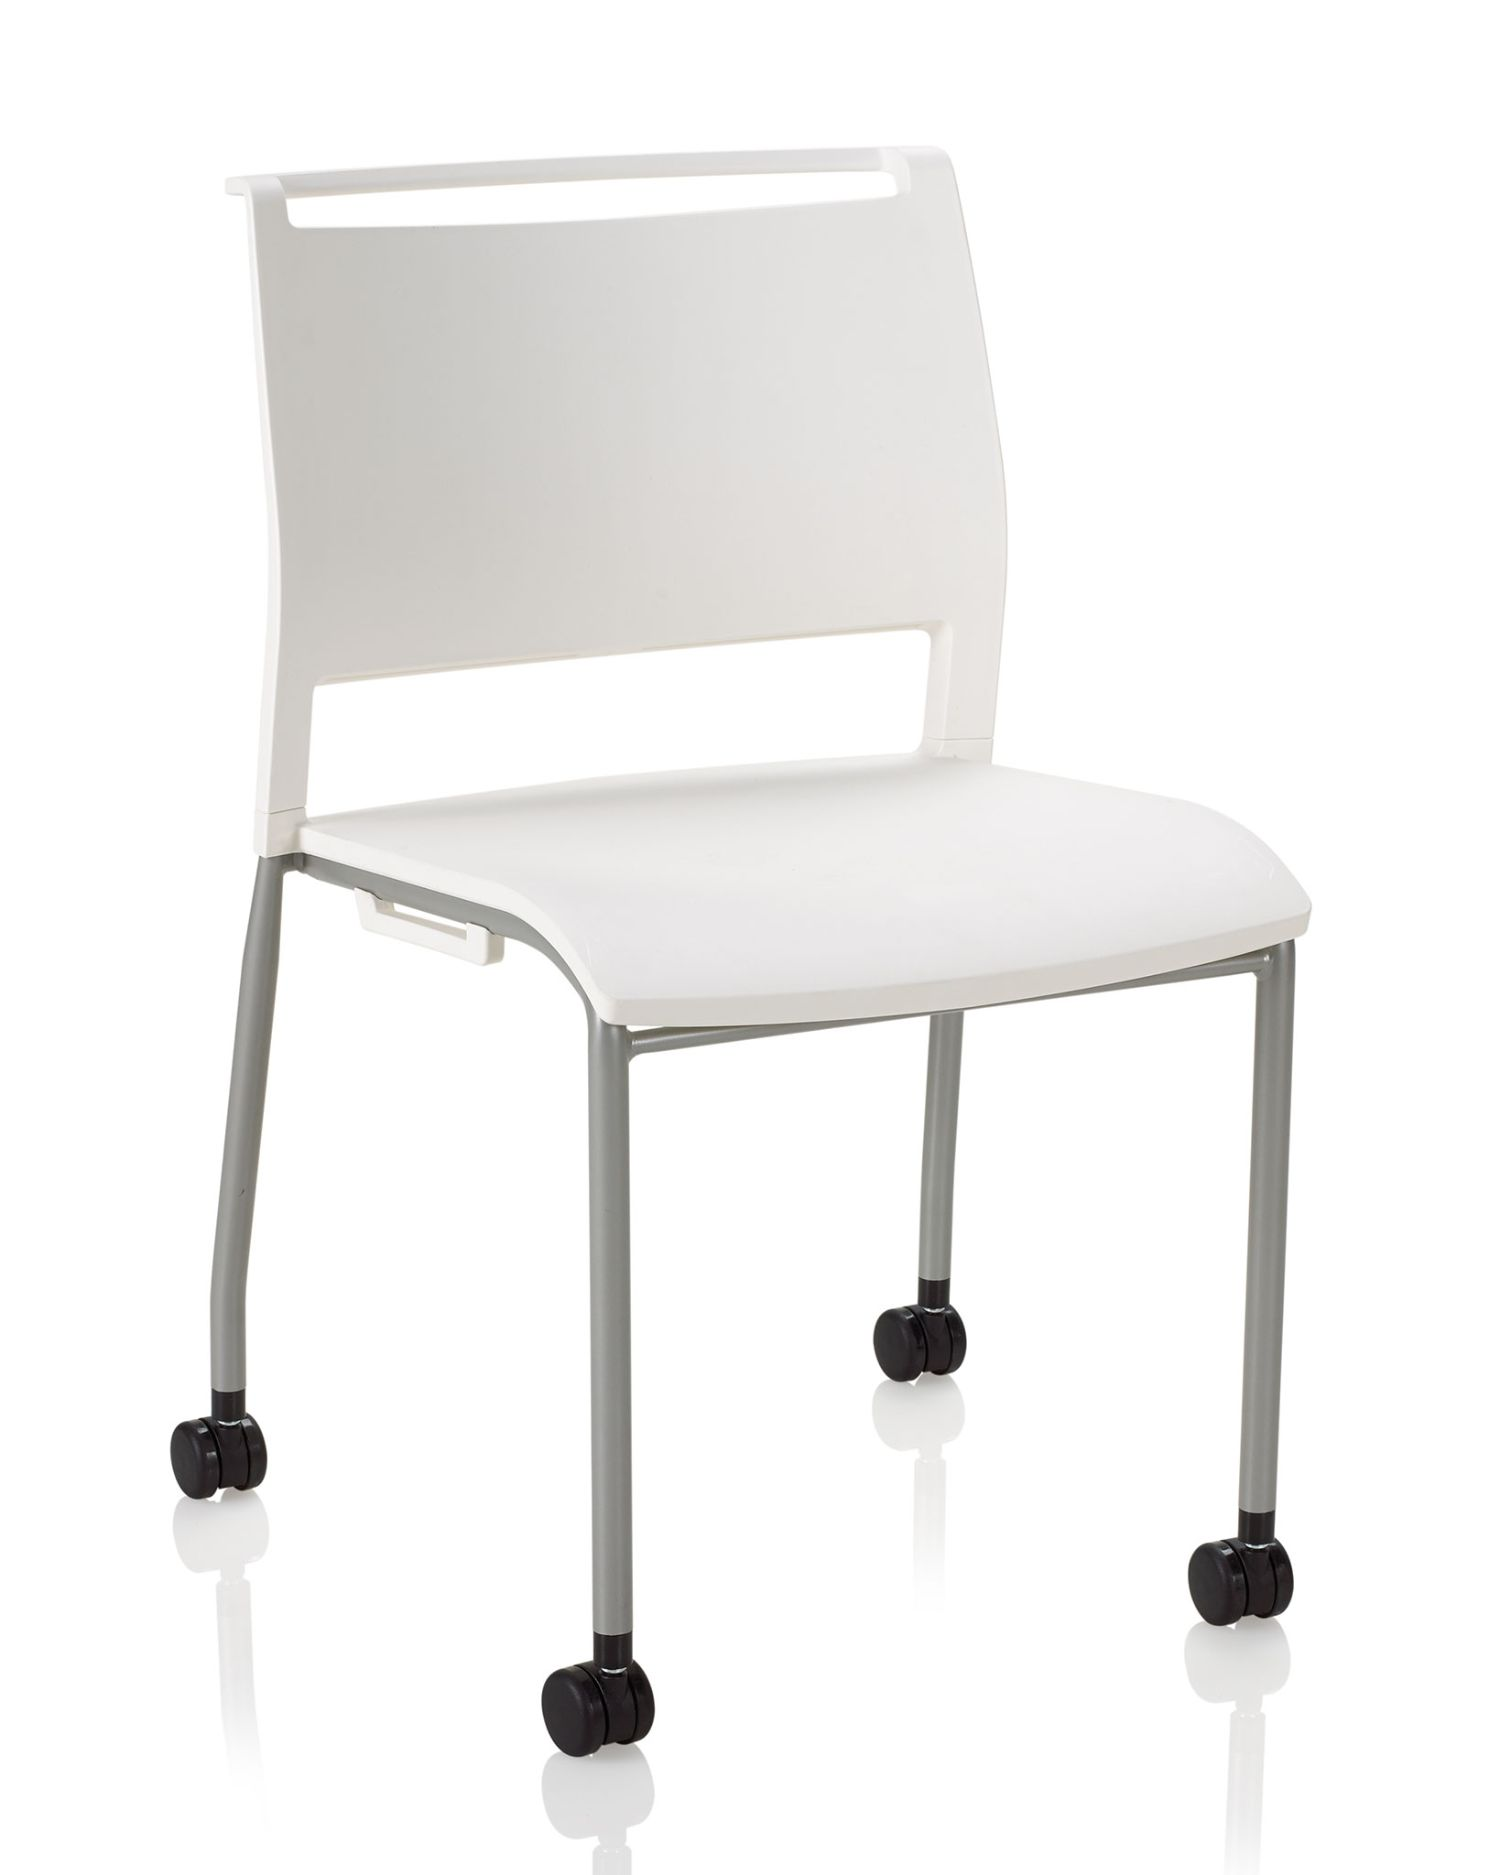 white opt4 mobile stack chair